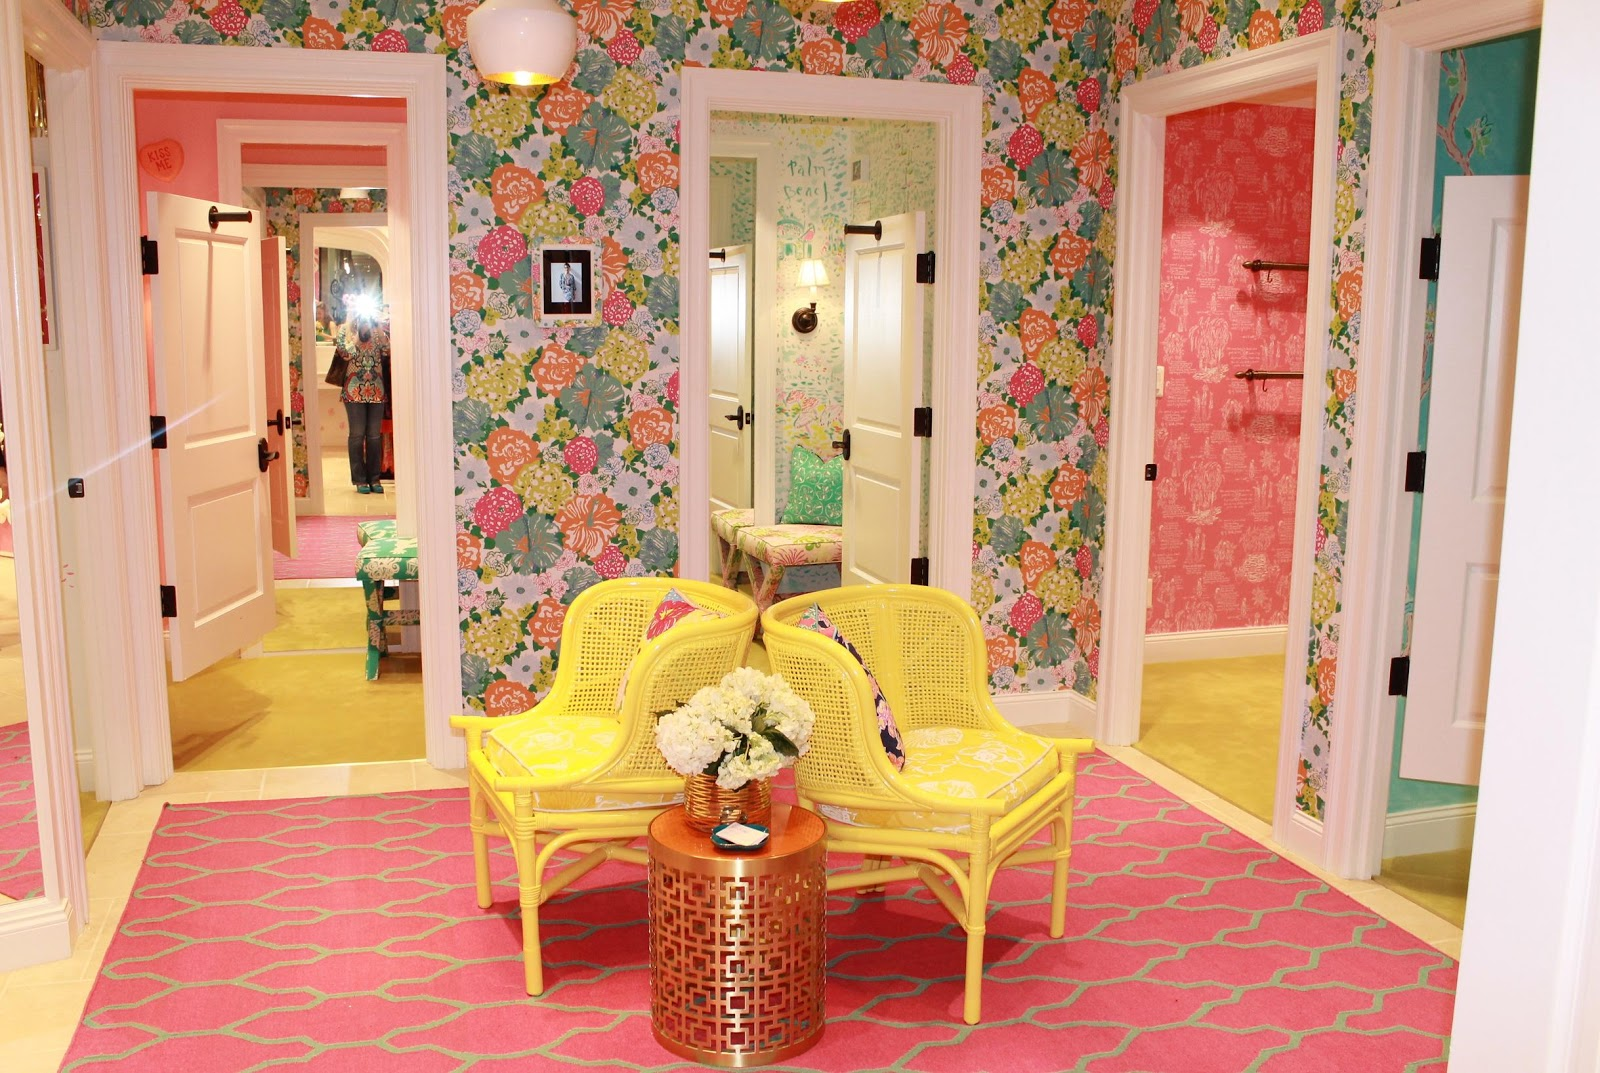 Maryland Pink and Green Lilly Pulitzer Tysons Galleria Opens